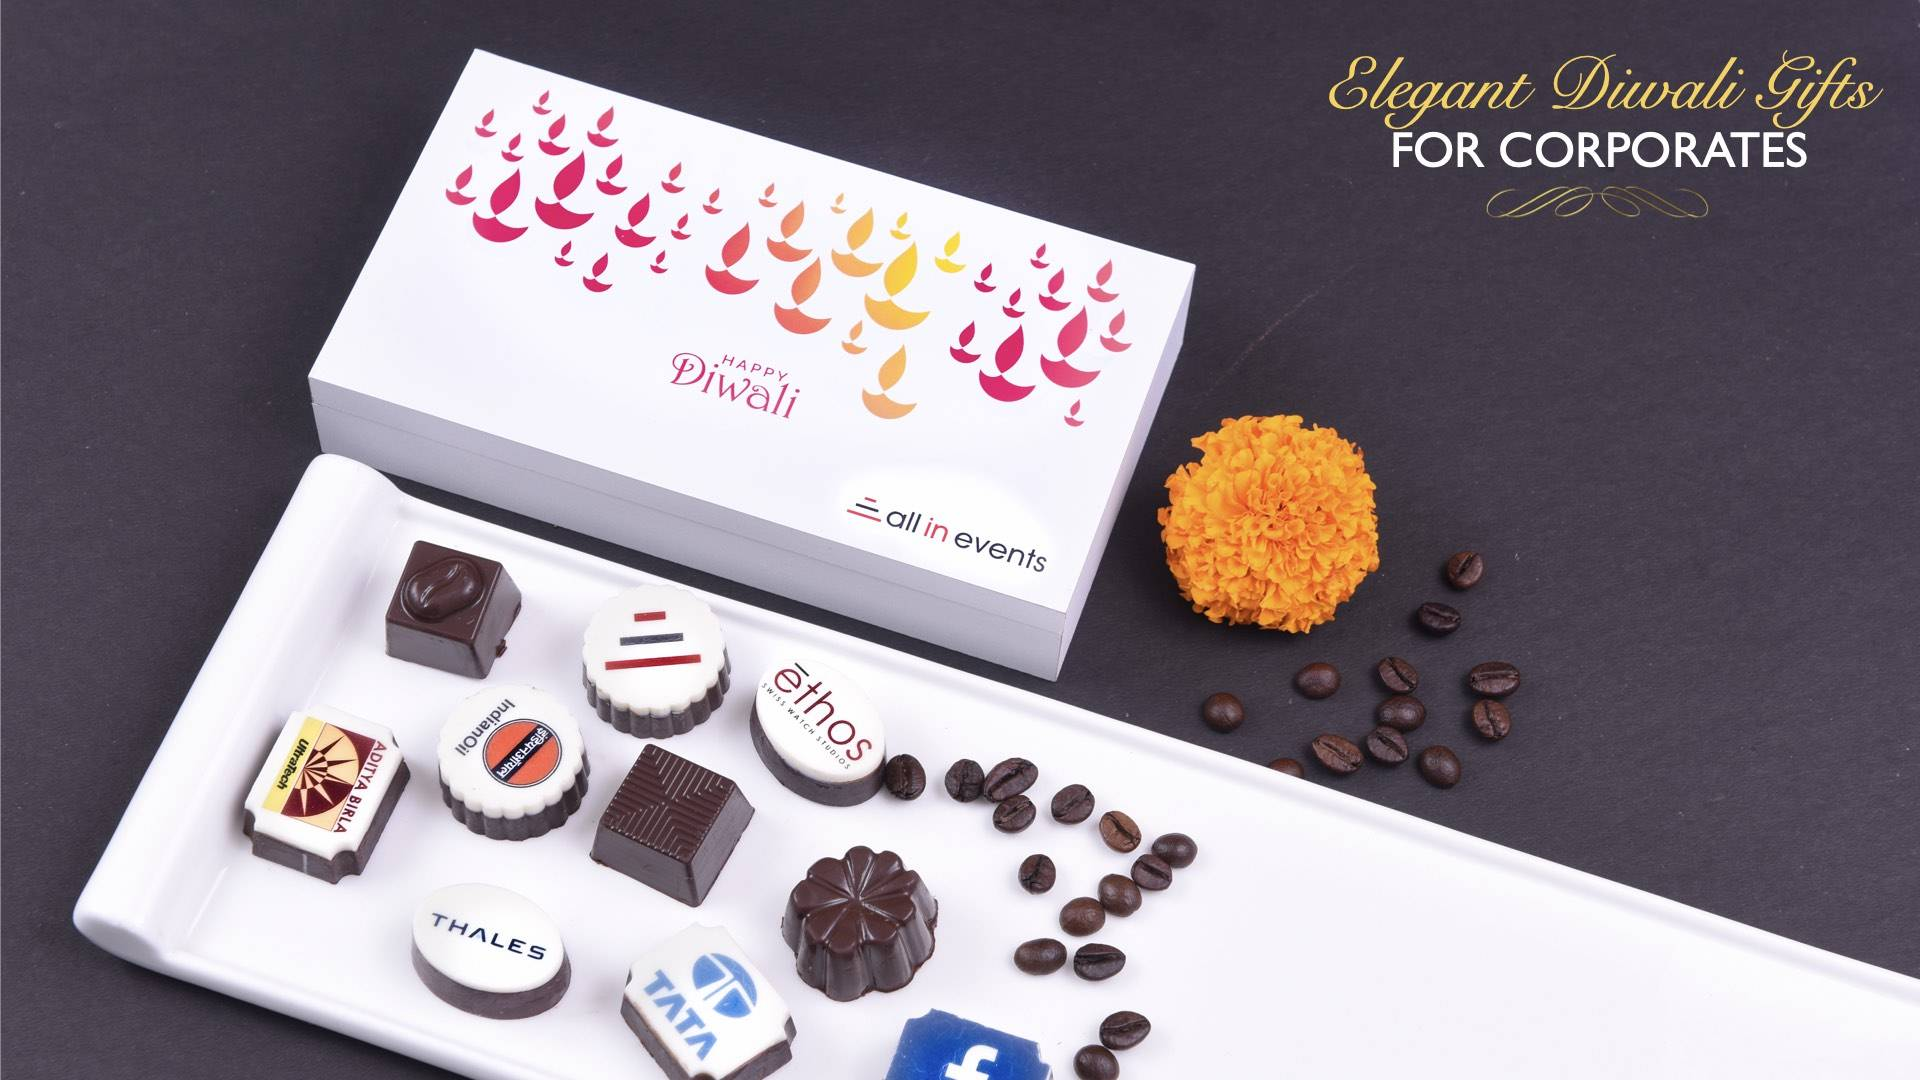 Logo printed chocolates for Diwali gifting